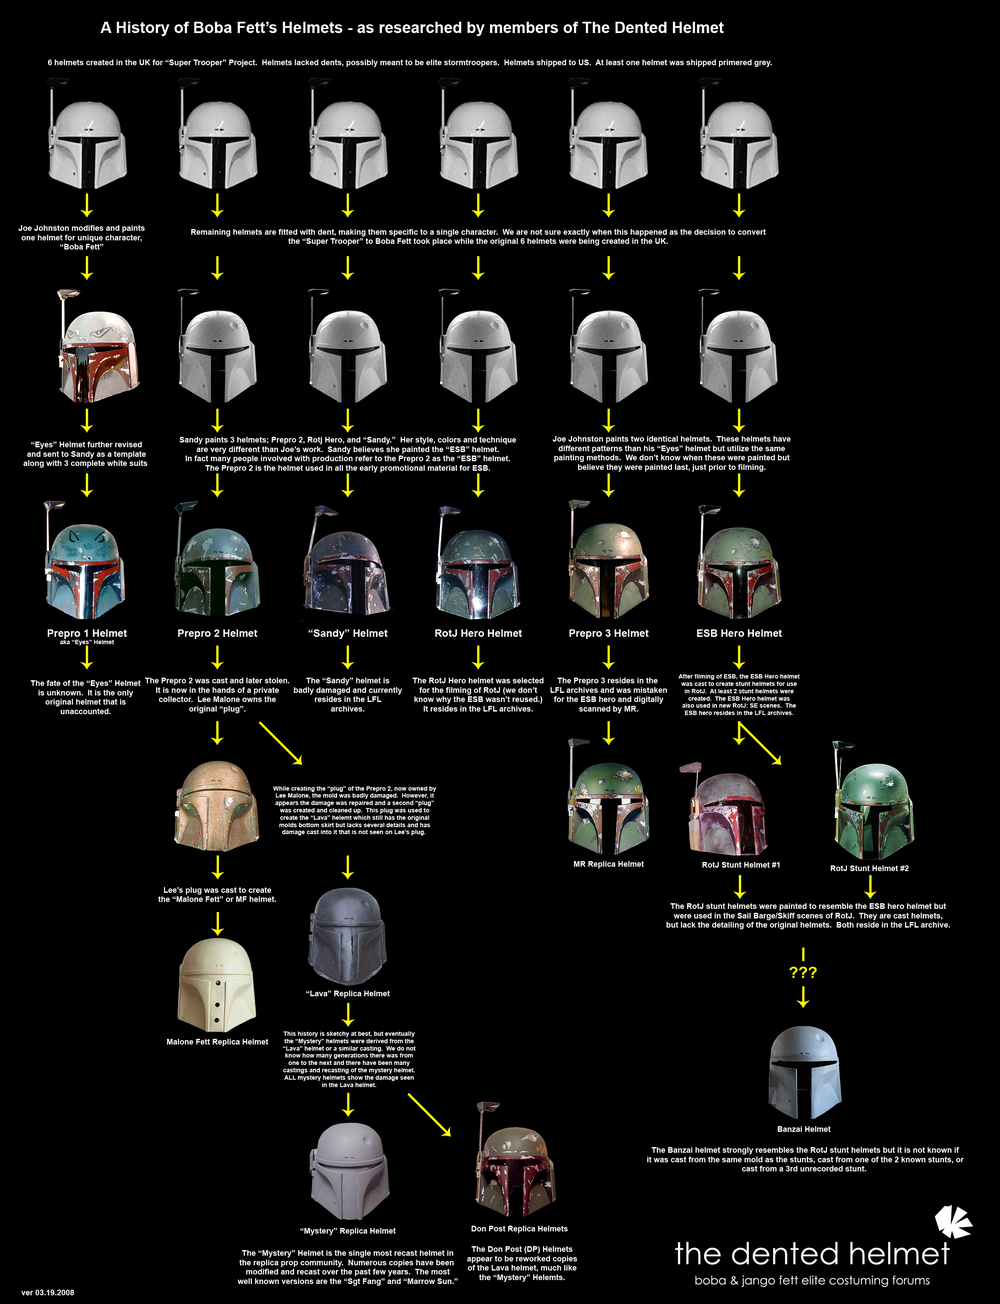 the history of boba fett 39 s helmets geektyrant. Black Bedroom Furniture Sets. Home Design Ideas